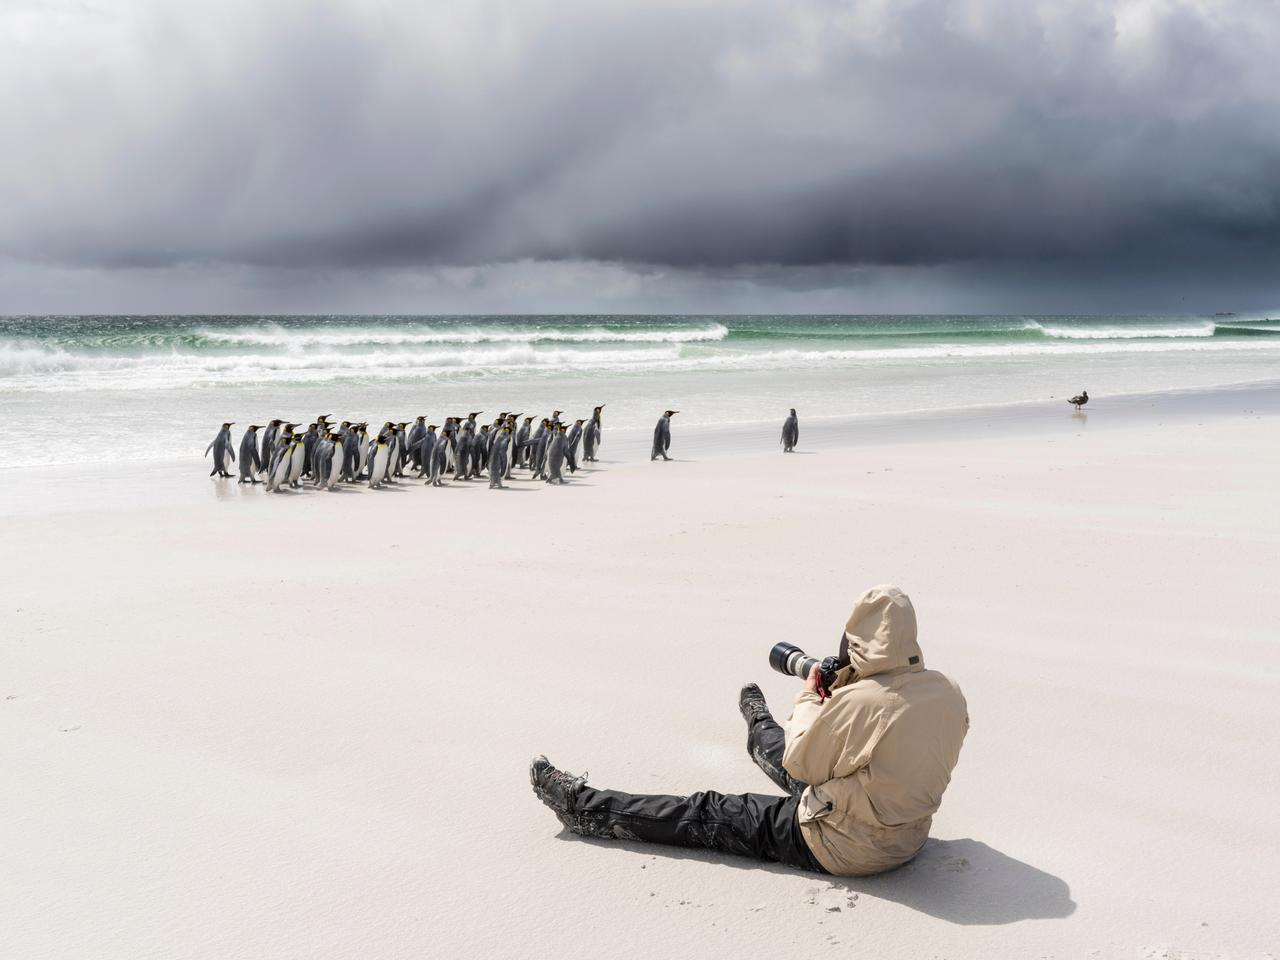 Visitor on a beach with king penguins (Aptenodytes patagonicus). (Large format sizes available)